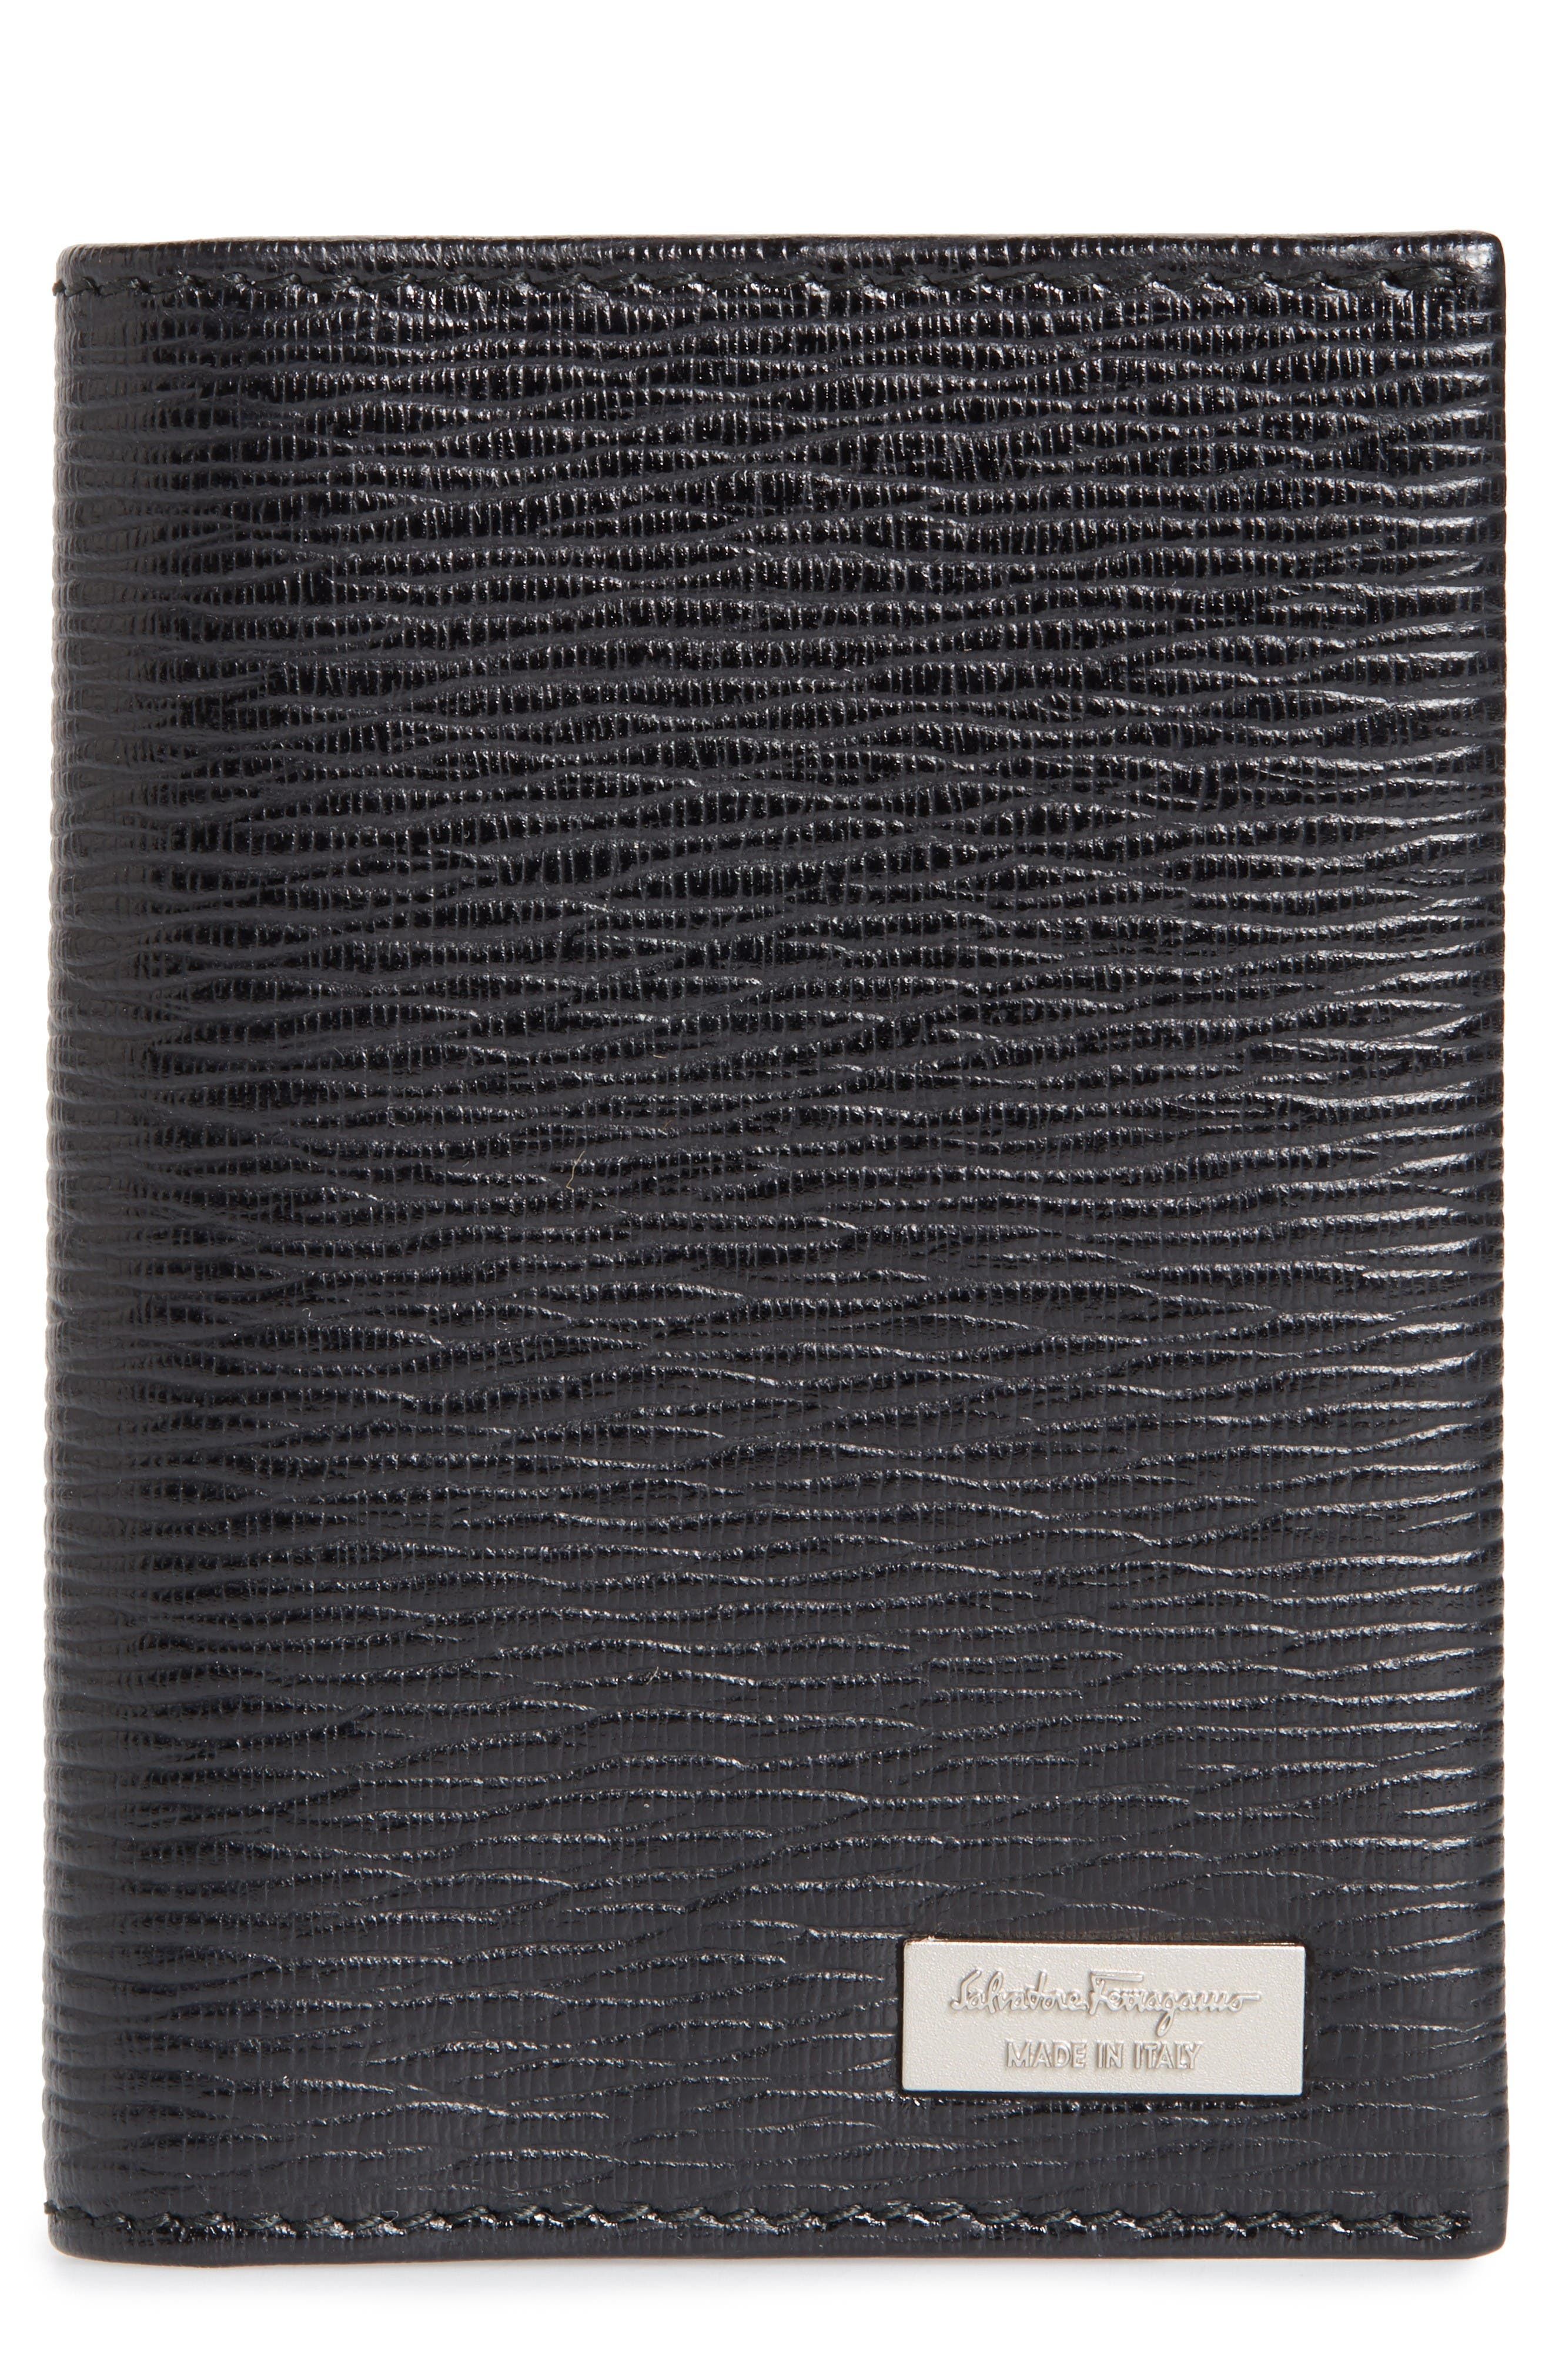 Salvatore Ferragamo Revival Leather Folding Card Case